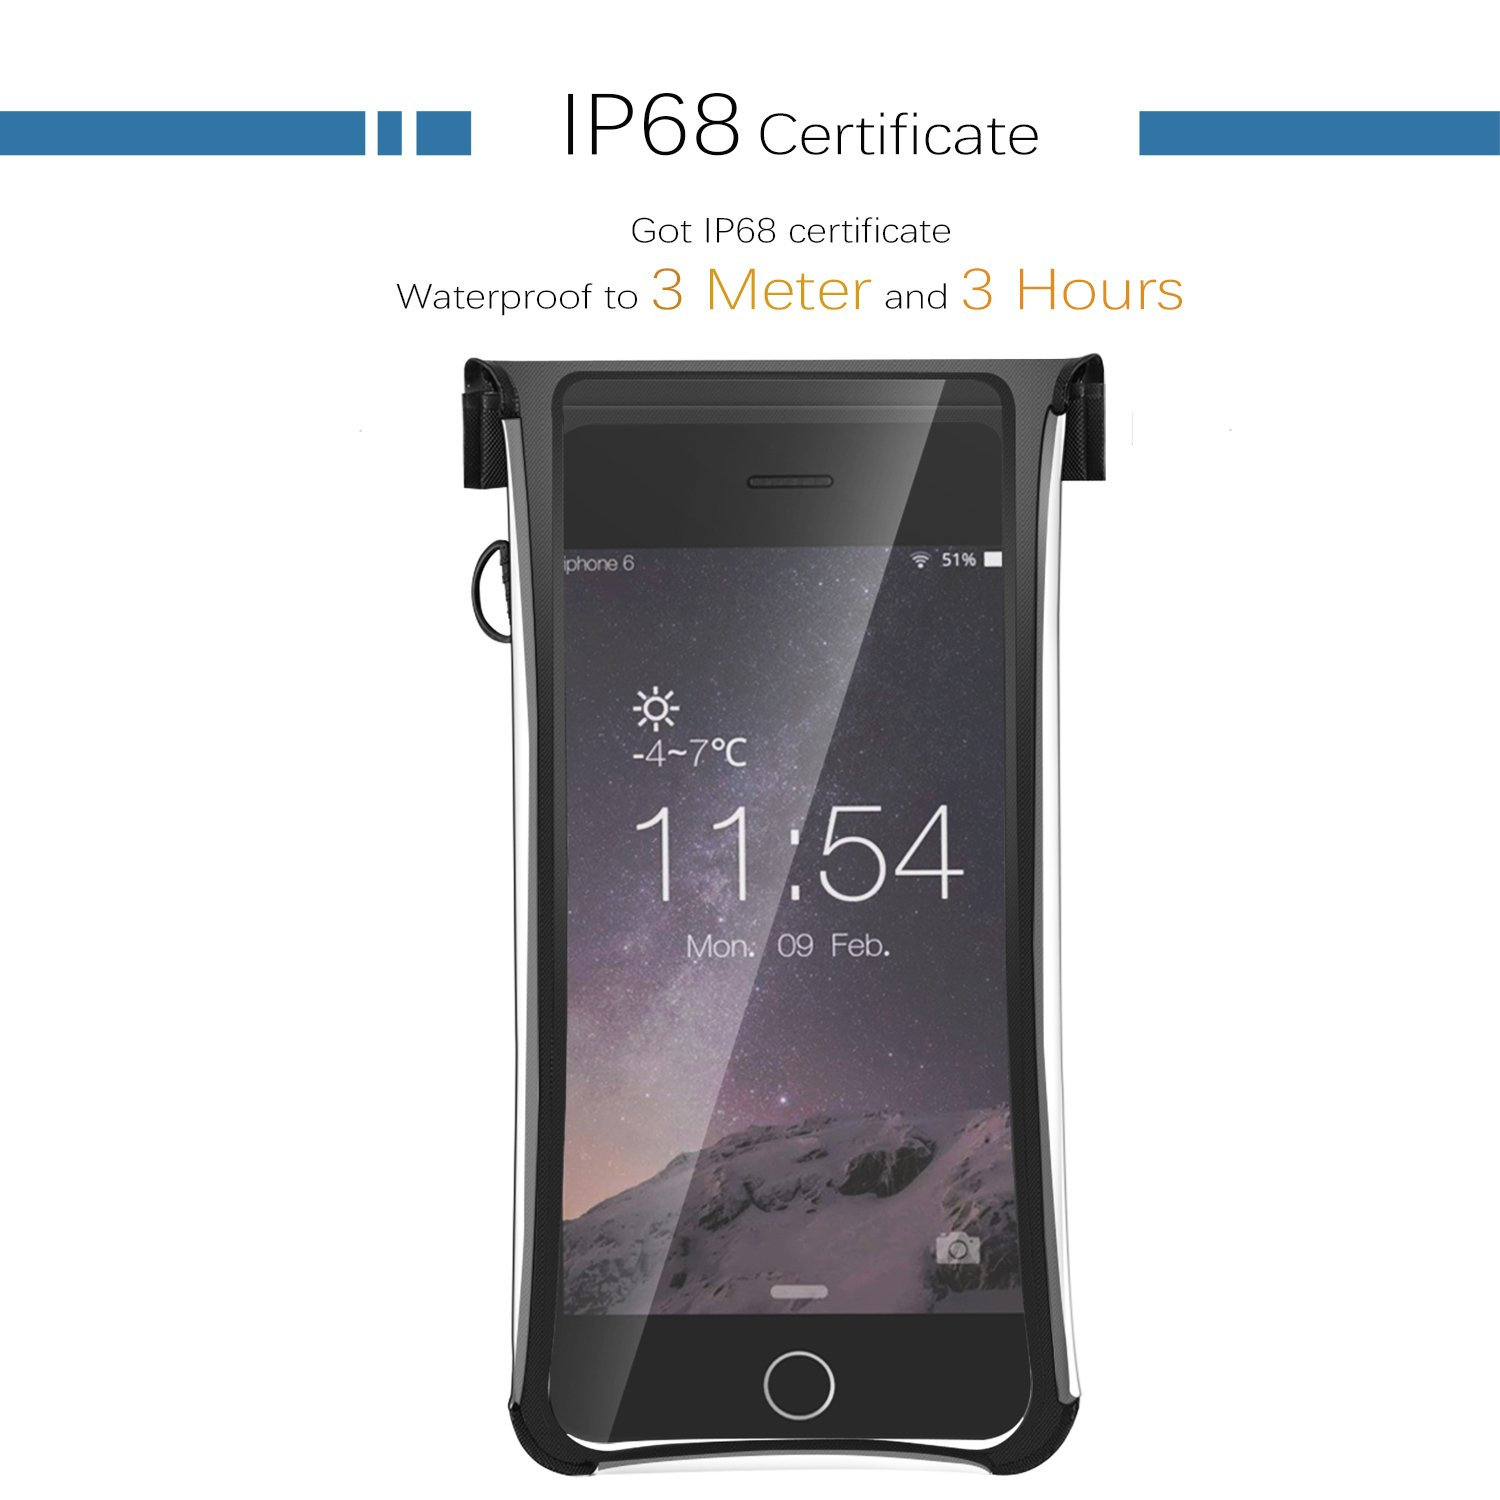 iFASCINATE Waterproof Case, Universal Waterproof Phone Case with Transparent Side Windows for iPhone 7 Plus, 7, 6S, 6,Samsung Note 5 Device under 5.7\'\'